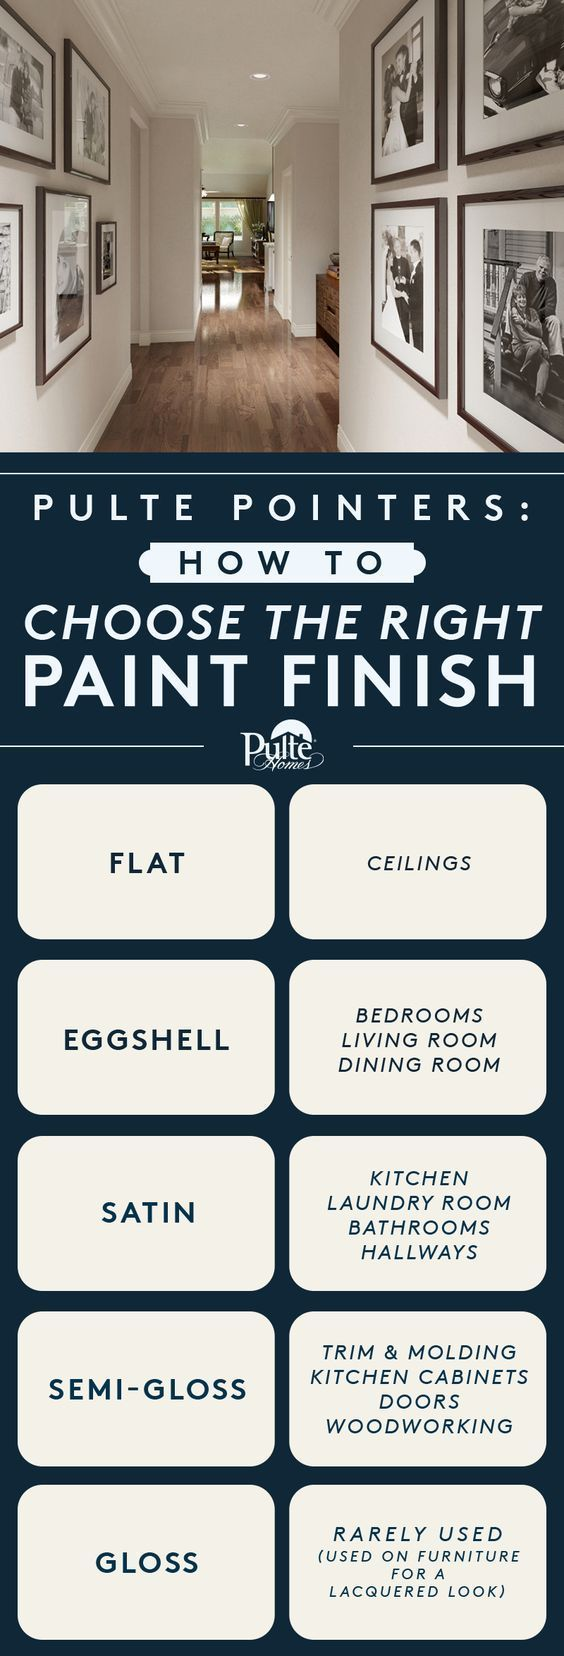 Paint Finish For Living Room 25 Best Ideas About Paint Finishes On Pinterest House Painting